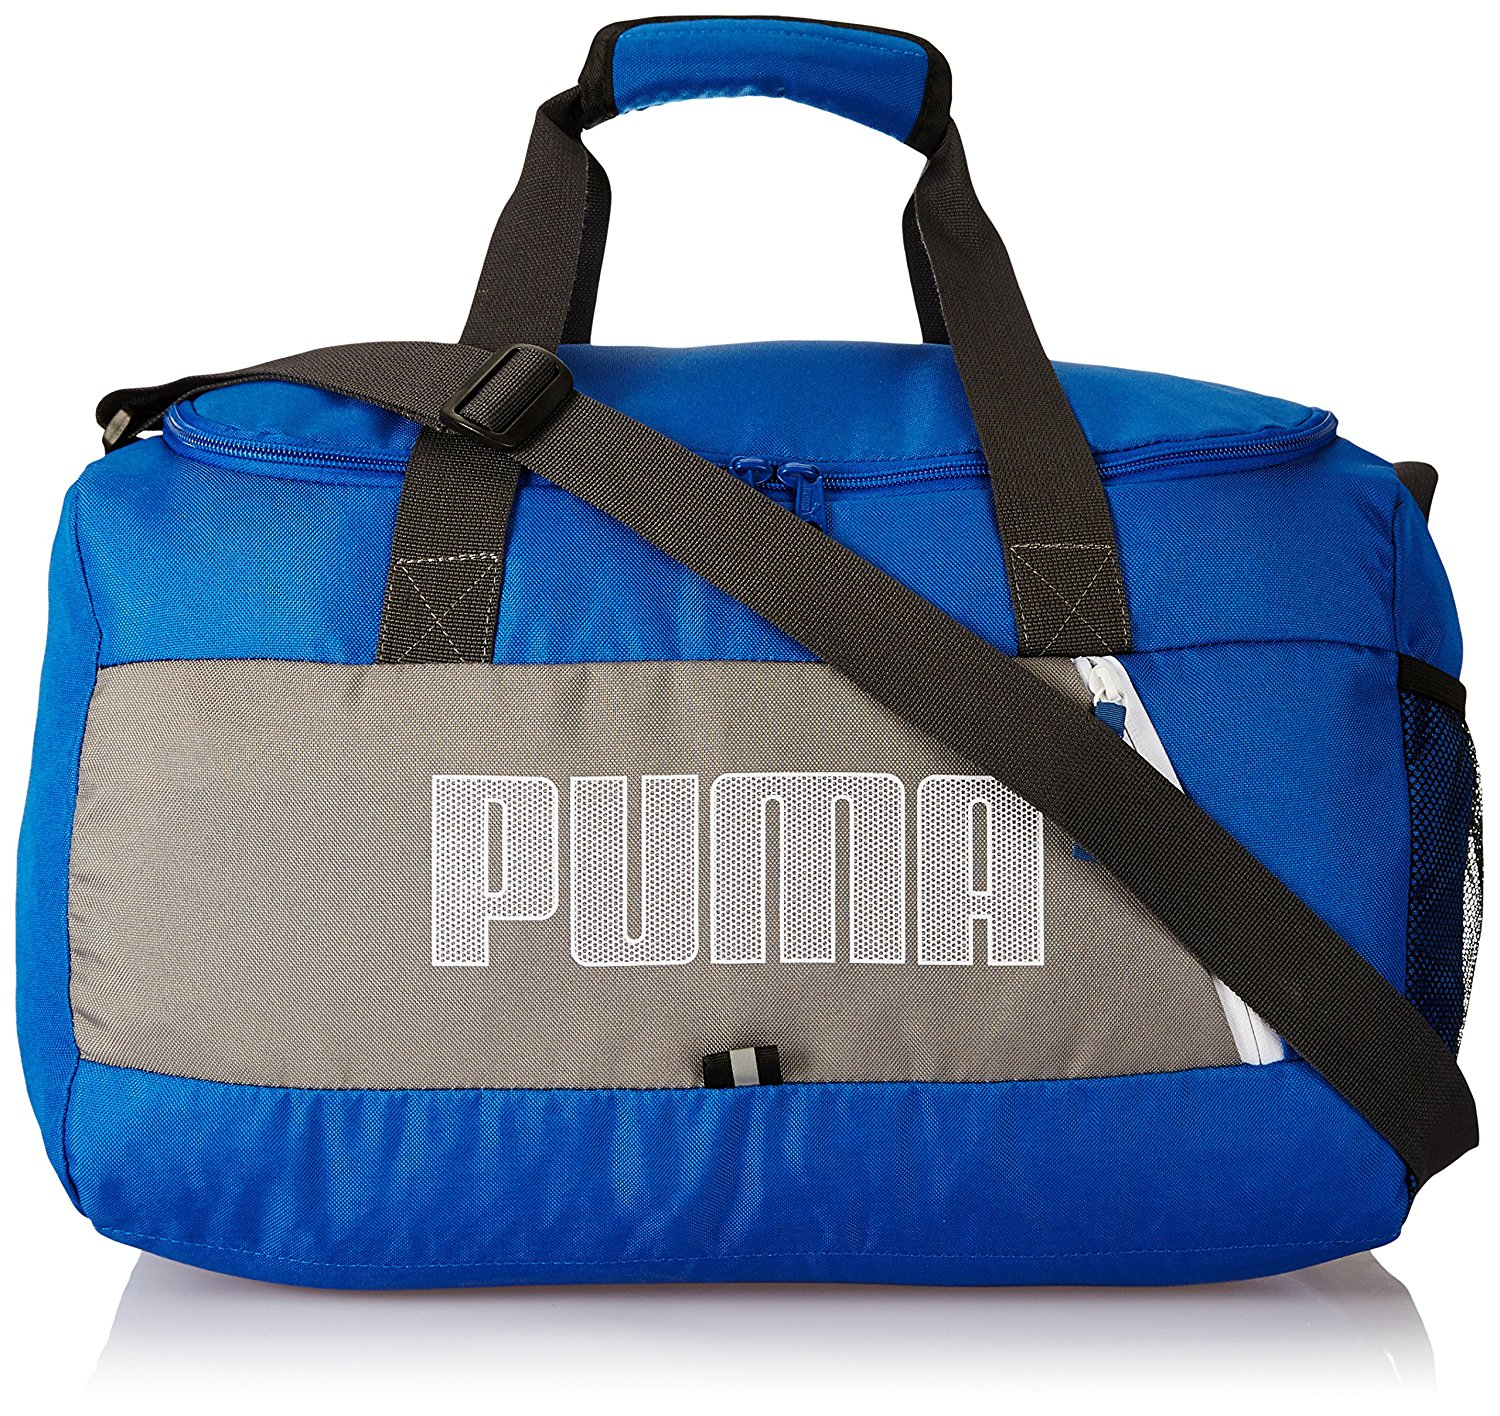 Puma Sporttasche amazon